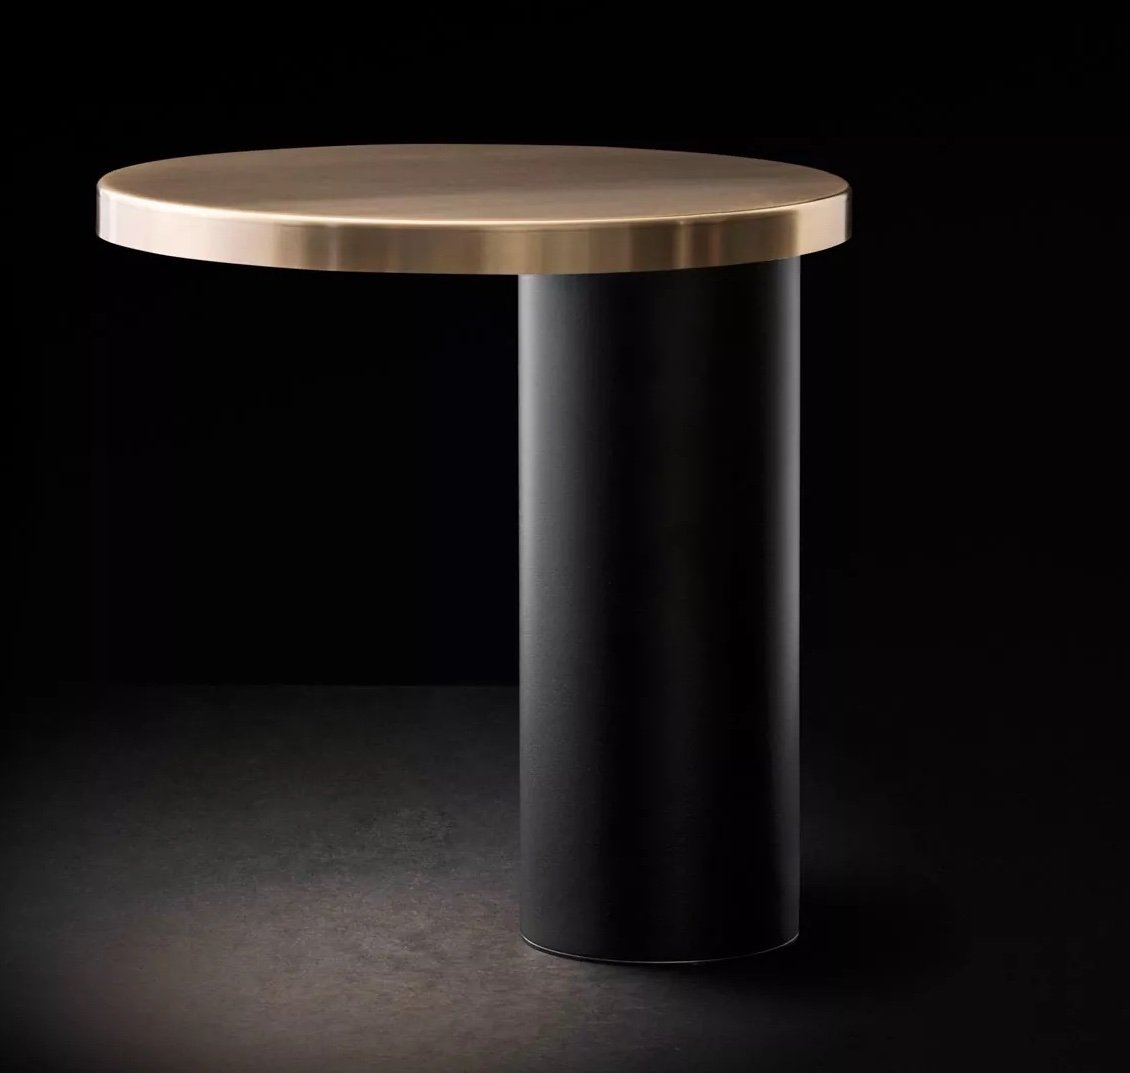 Cylinda Table Lamp lighting from Oluce, designed by Mariana Pellegrino Soto